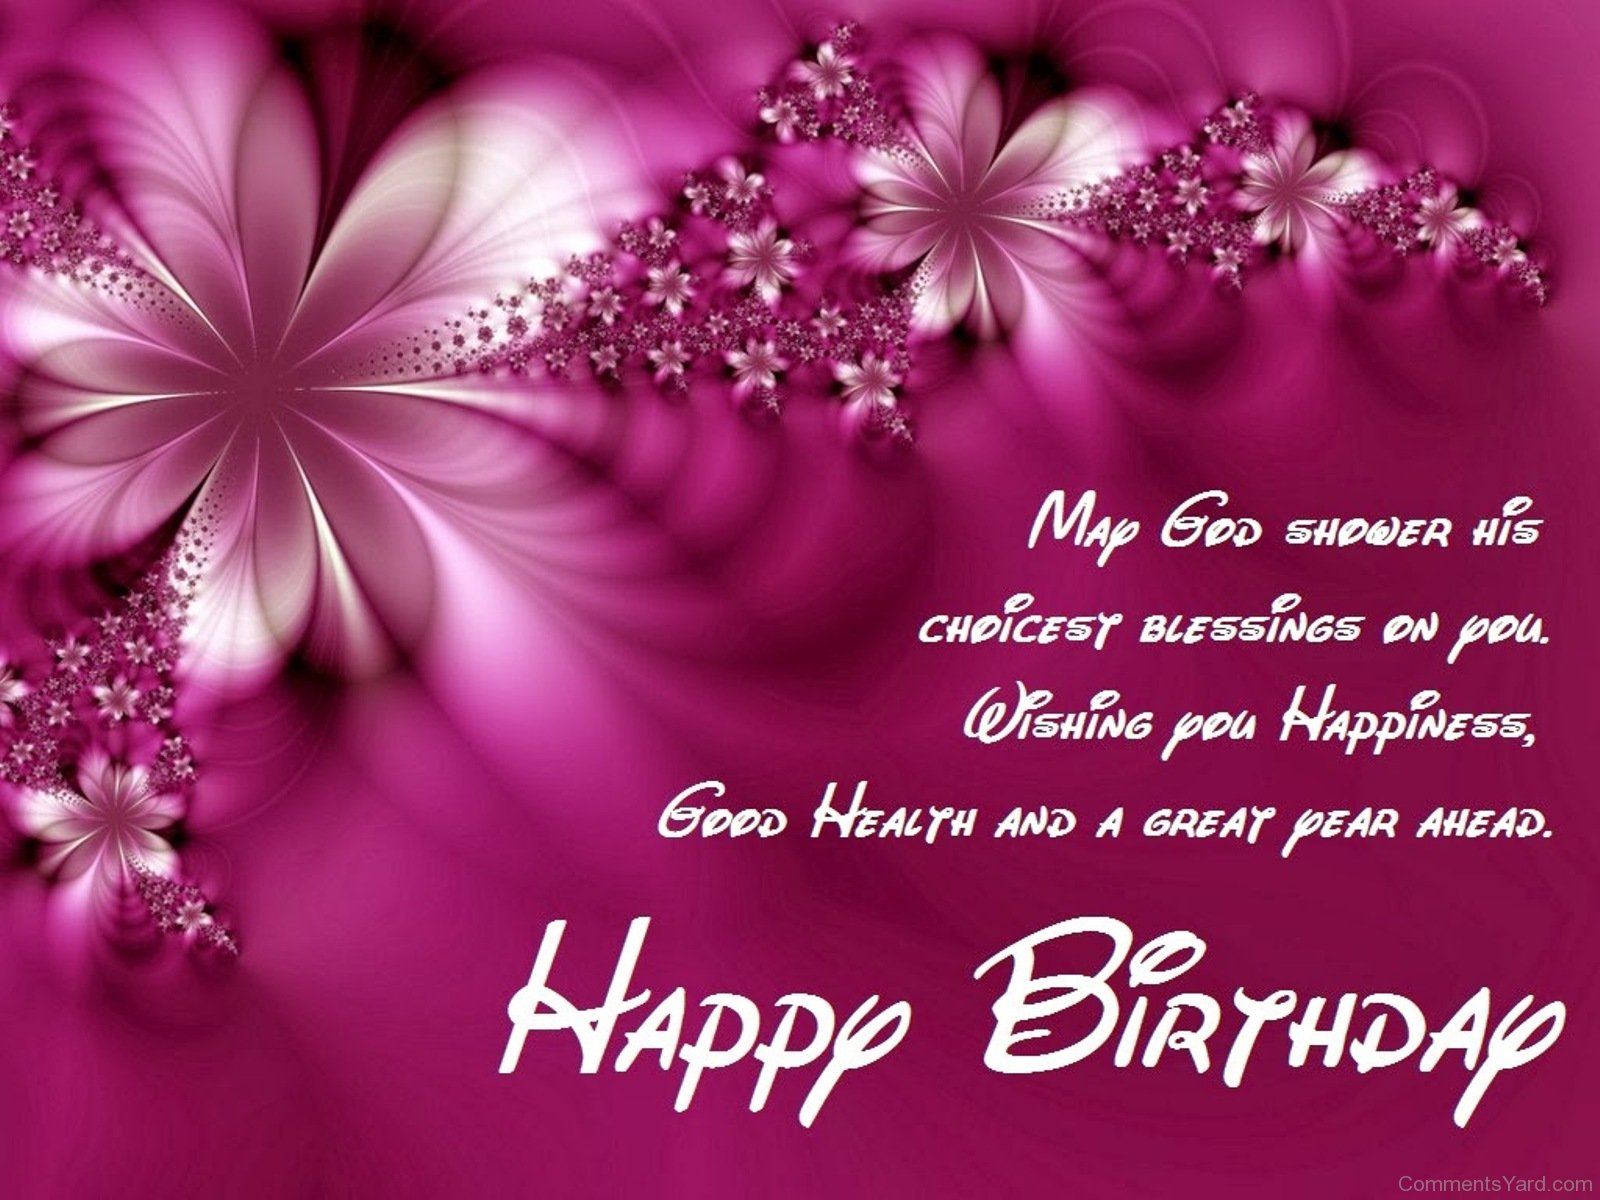 happy birthday picture comments ; Wishing-You-Happiness-Happy-Birthday-CY150